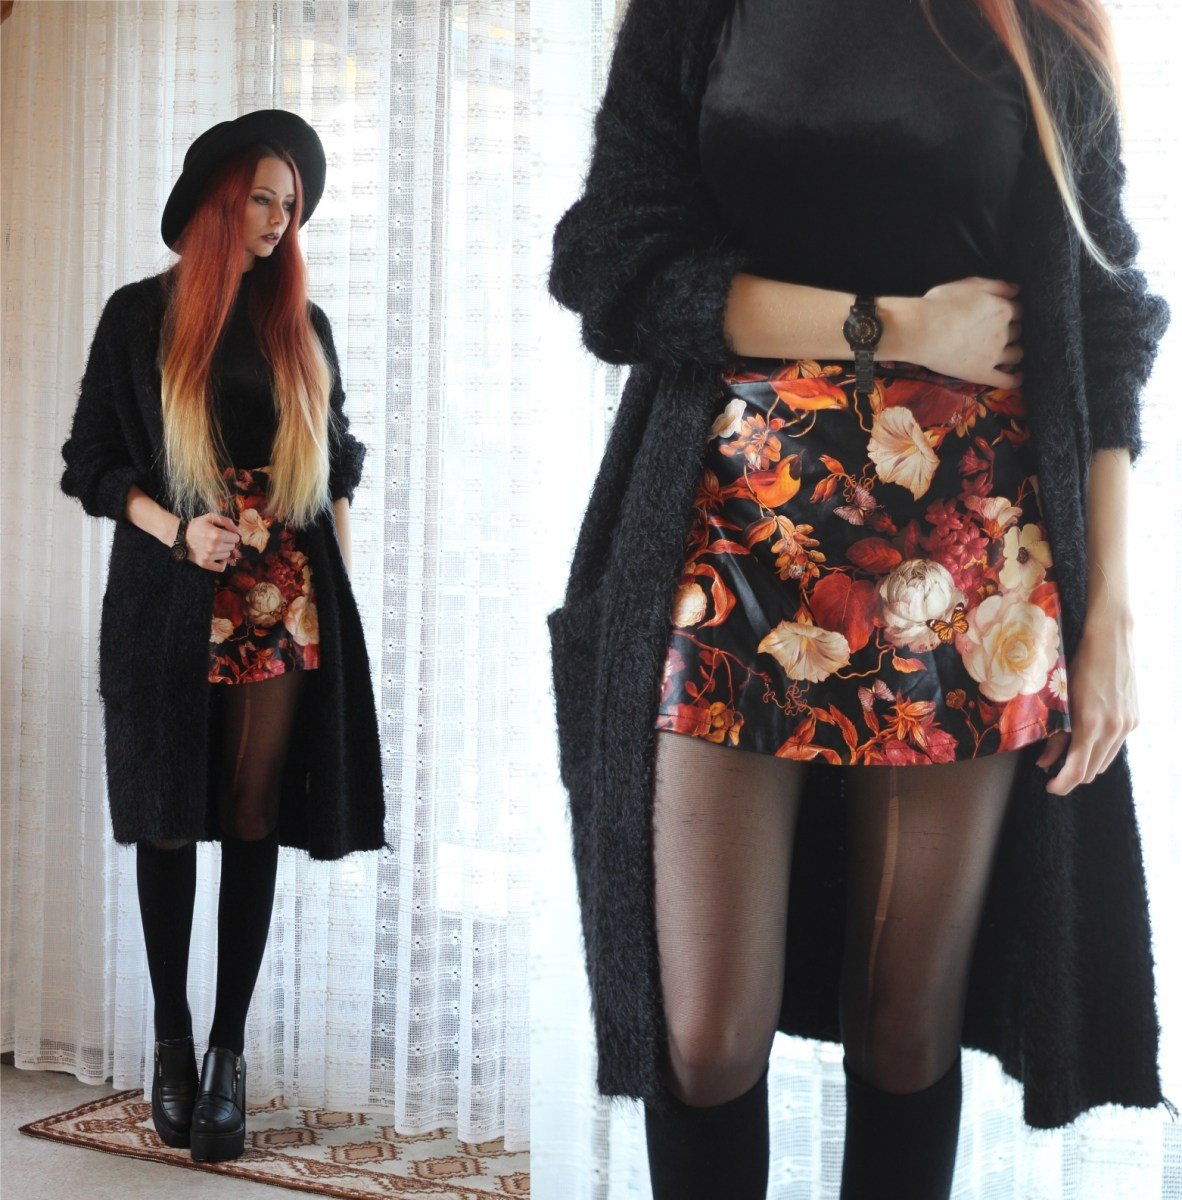 Floral skirt and all black: between autumn and spring